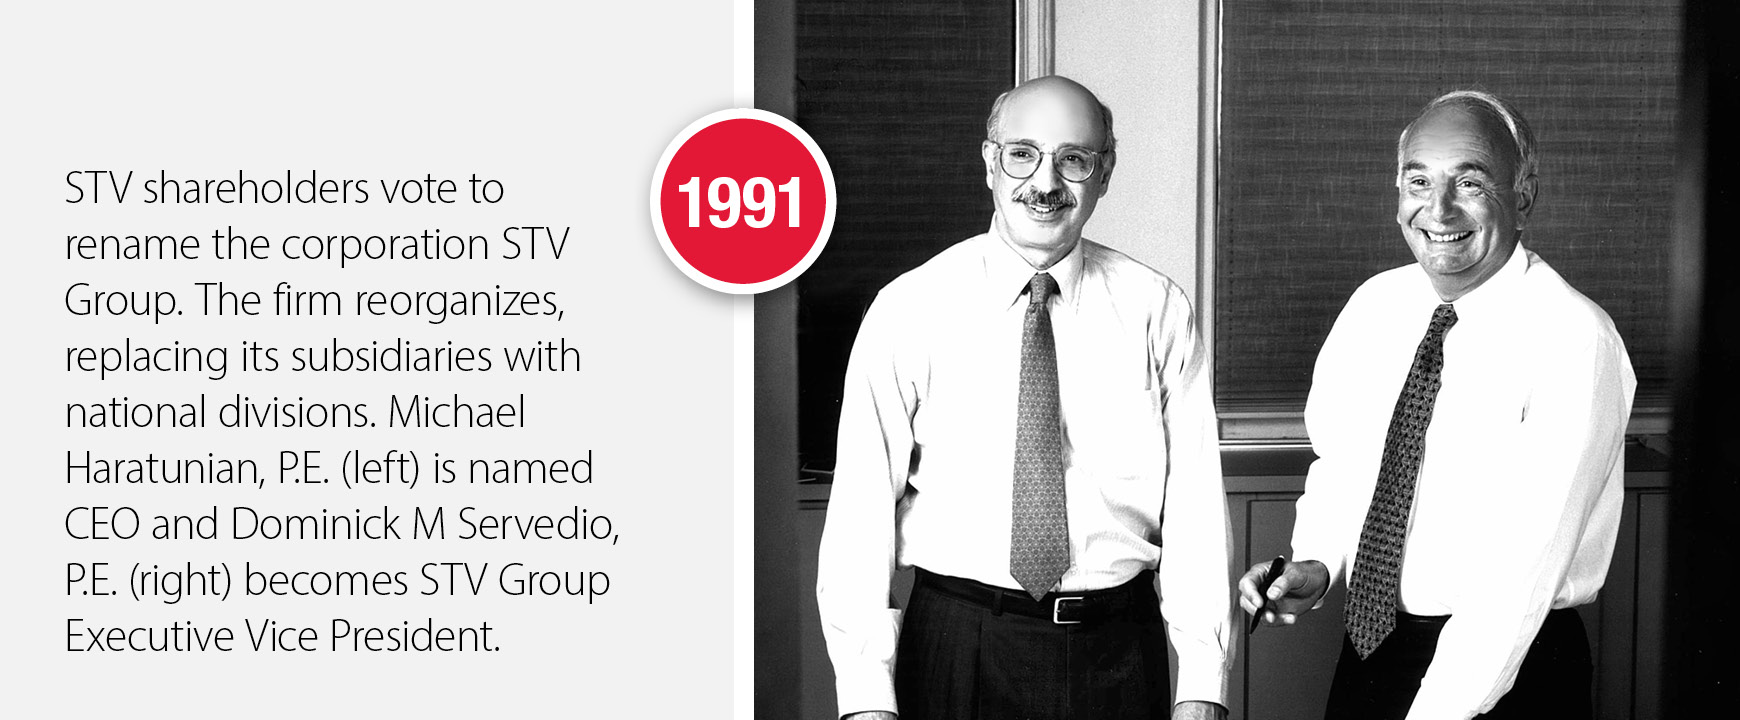 1991 - Corporation renamed to STV Group